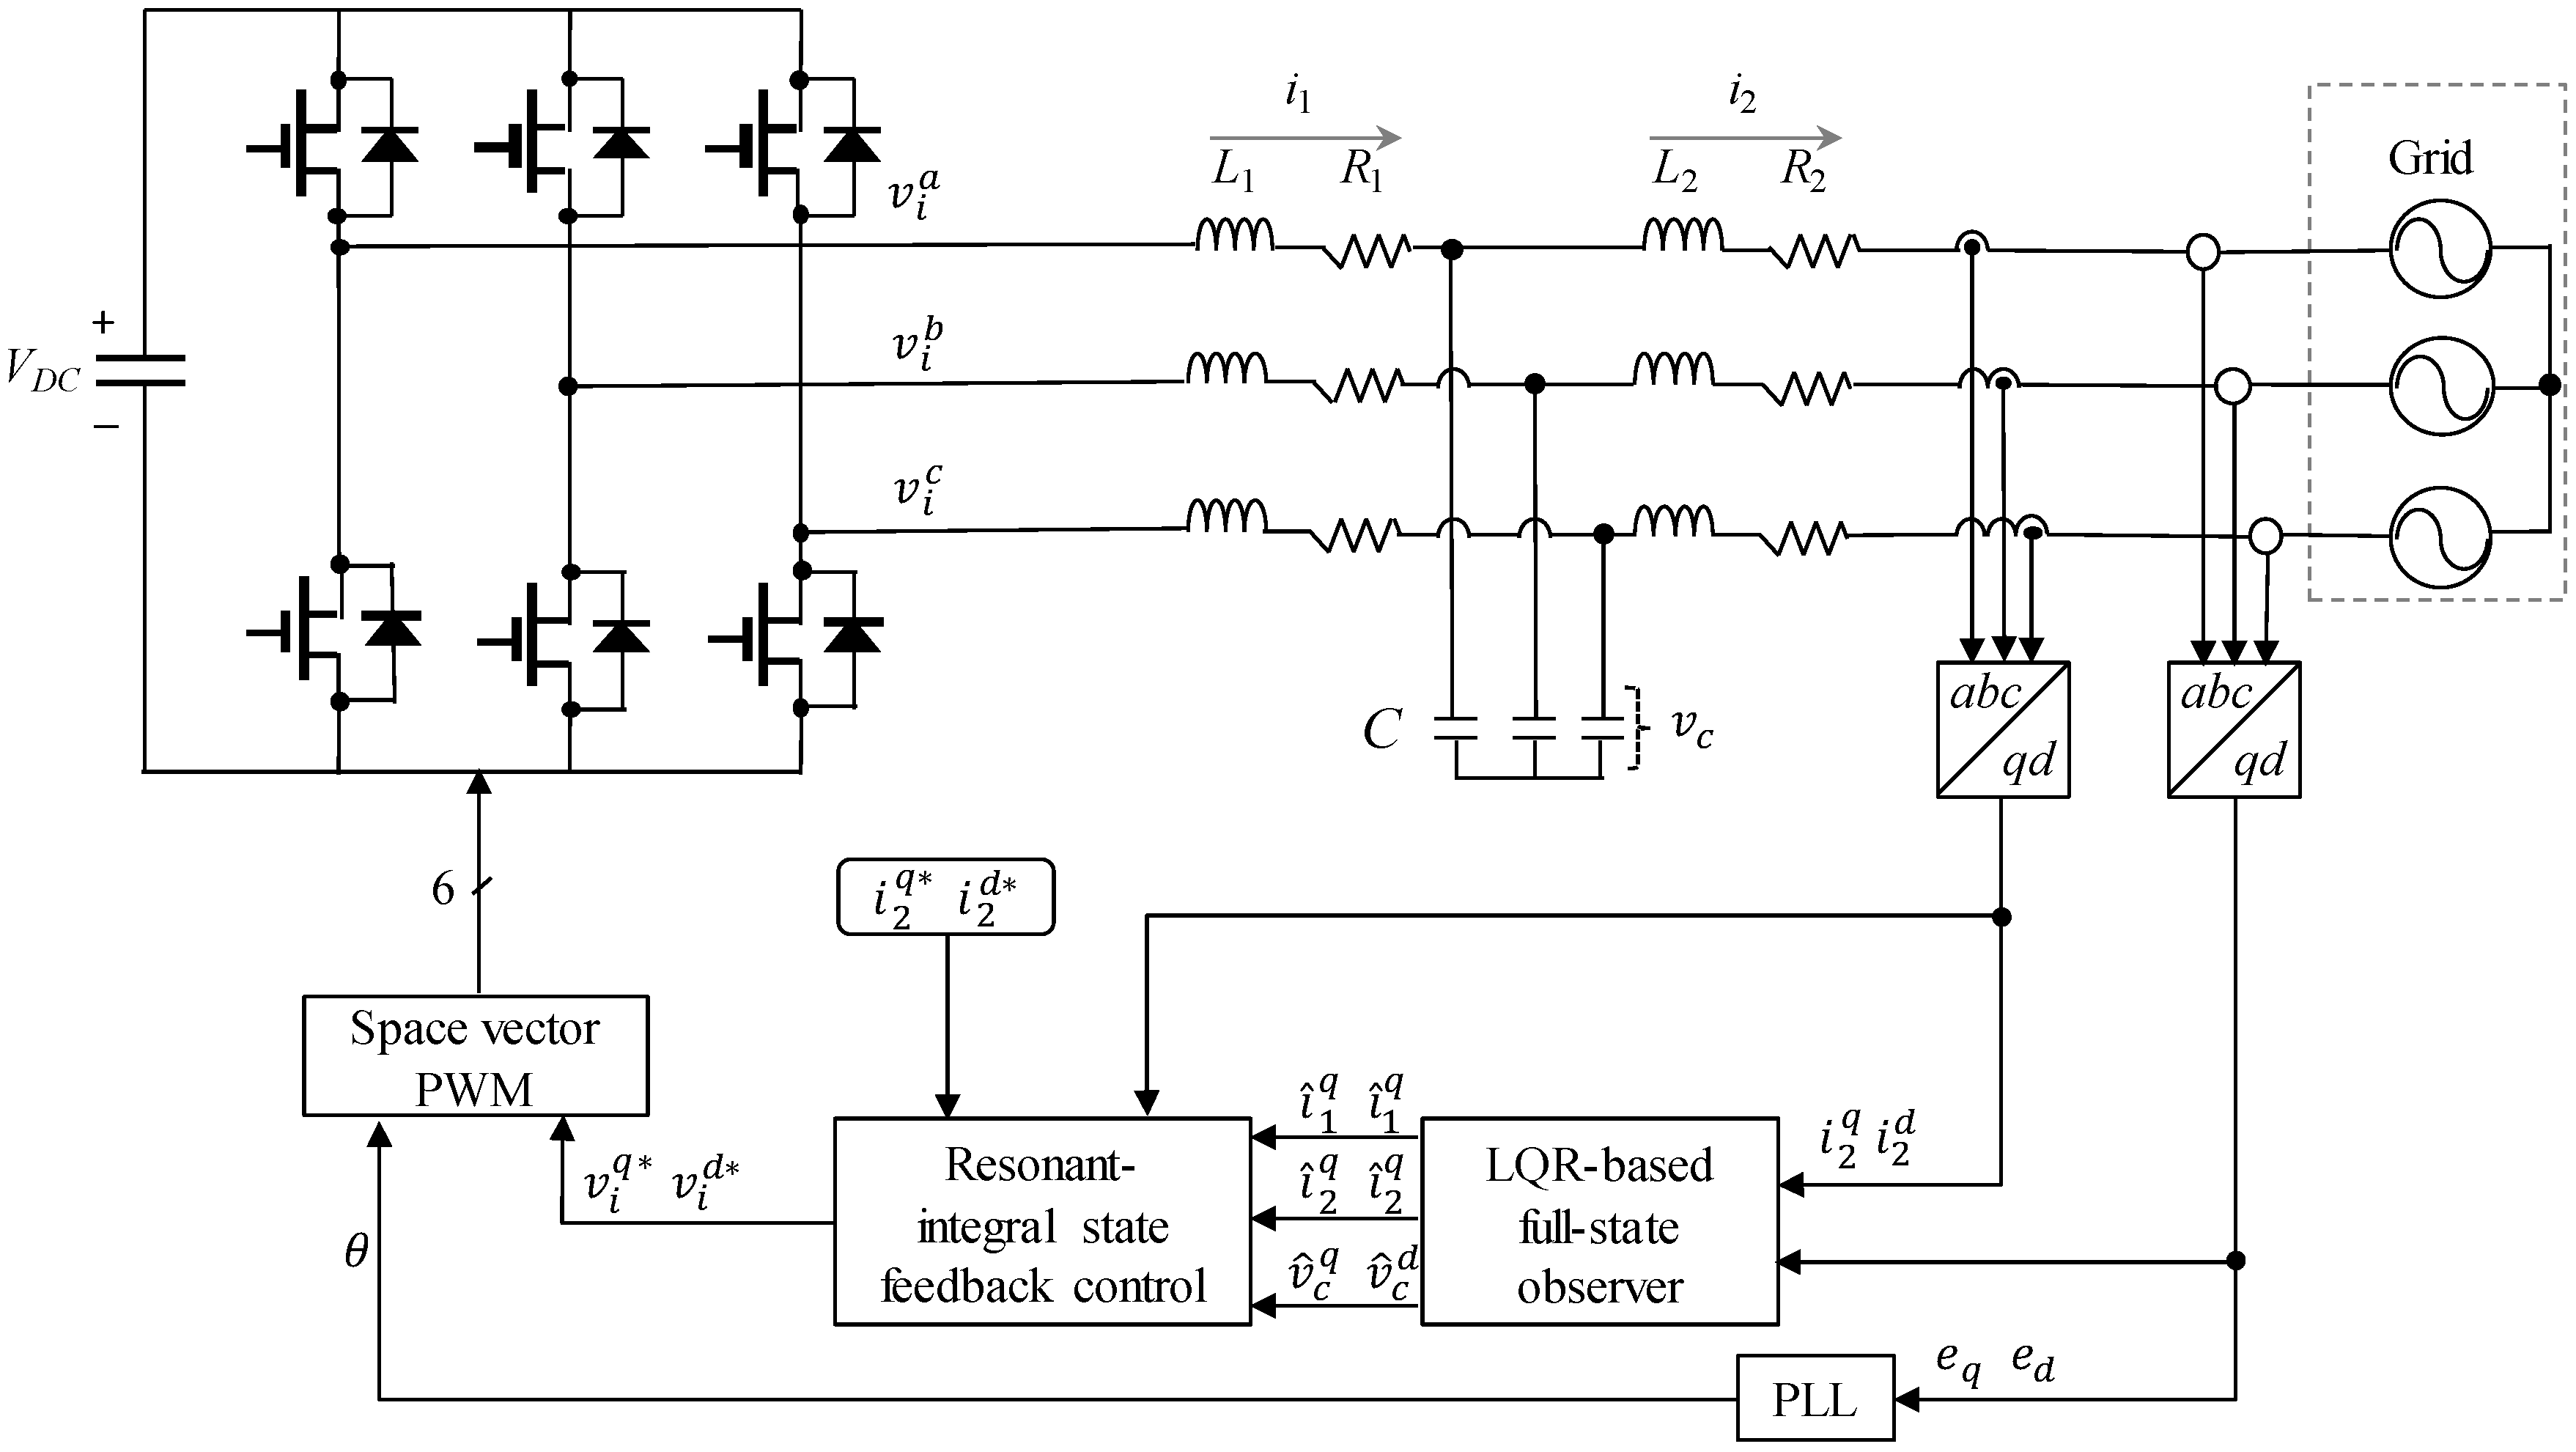 Energies Free Full Text An Lqr Based Controller Design For An Lcl Filtered Grid Connected Inverter In Discrete Time State Space Under Distorted Grid Environment Html